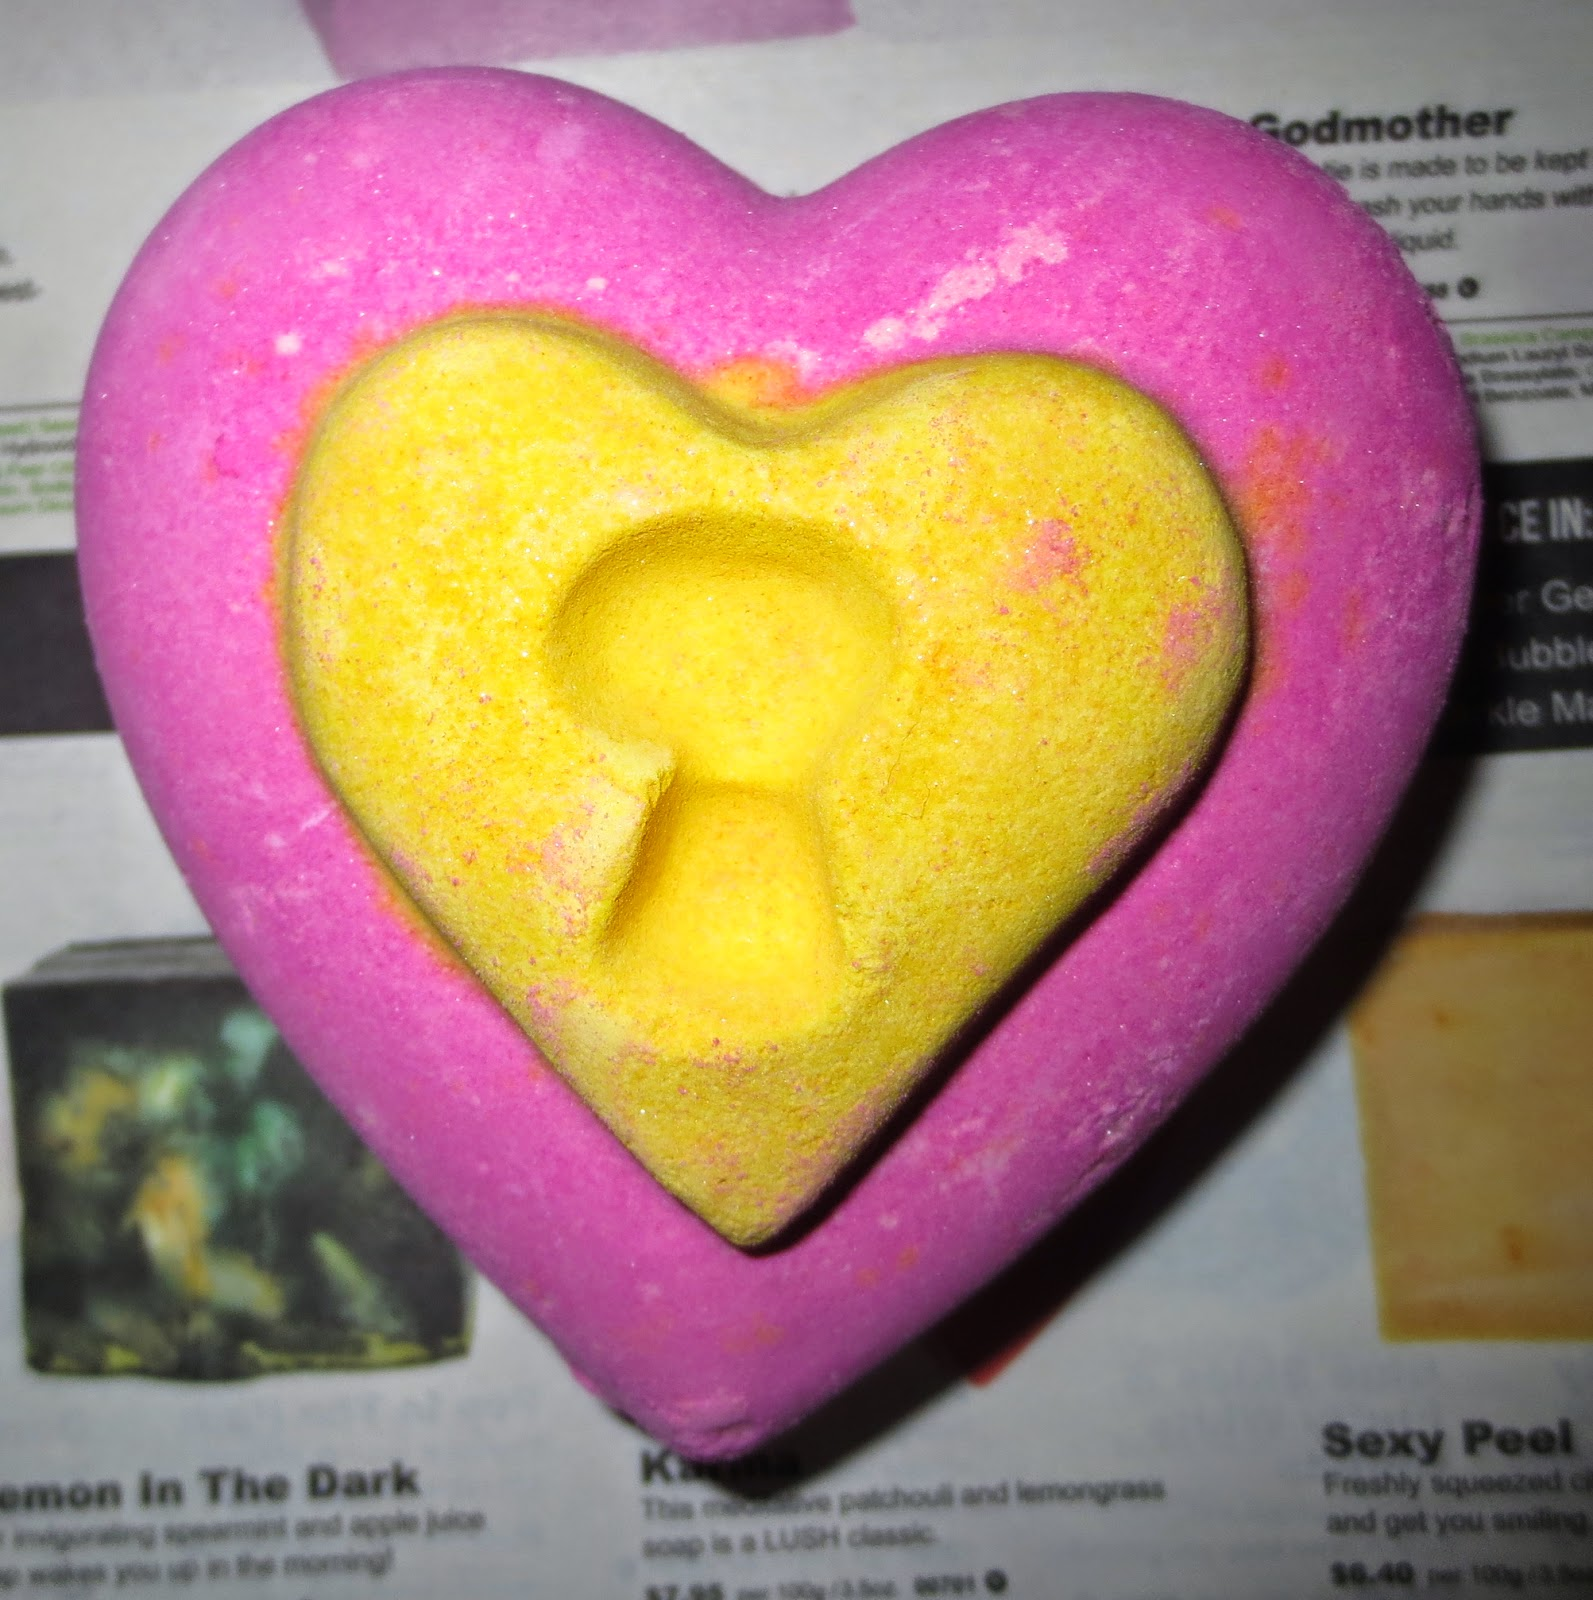 Lush's Love Locket Bath Bomb